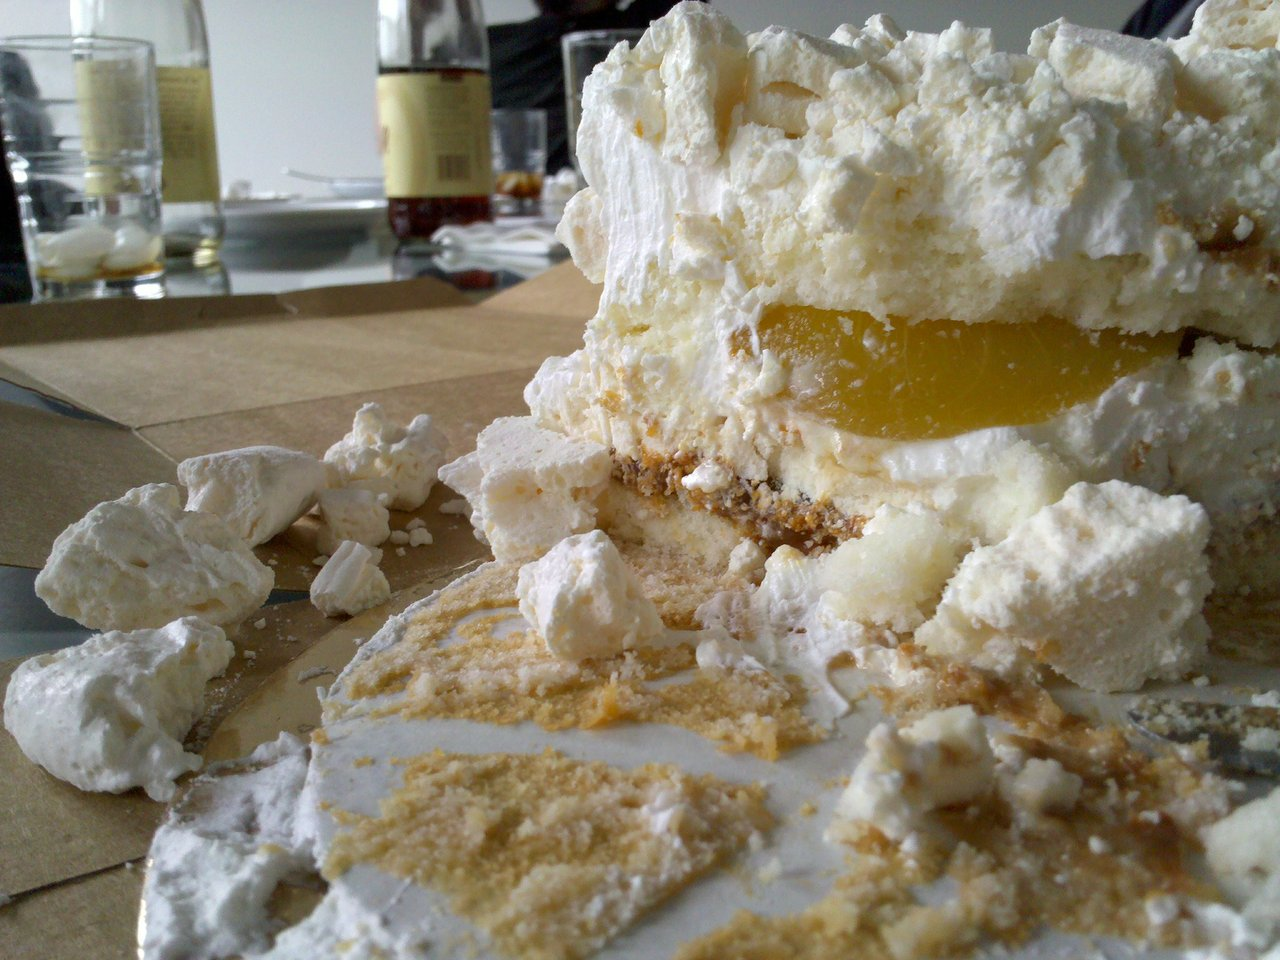 Remains of a cake filled with dulce de leche and peaches, covered in merengue crumbles and fresh whip cream.